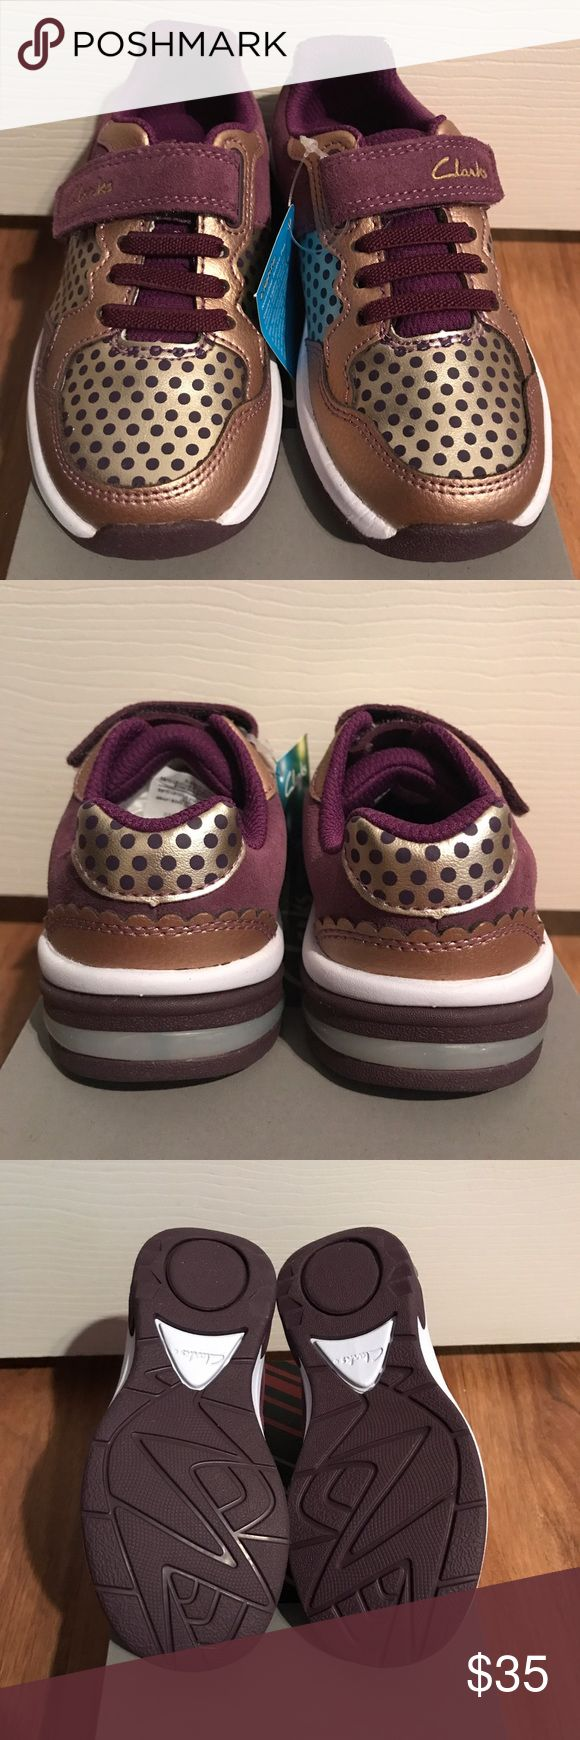 Clarks Light Up Shoes- toddler sz 9 New in box. Light up shoes. Elastic laces with Velcro at top to easily slip on and off. Gold leather, purple suede Clarks Shoes Sneakers